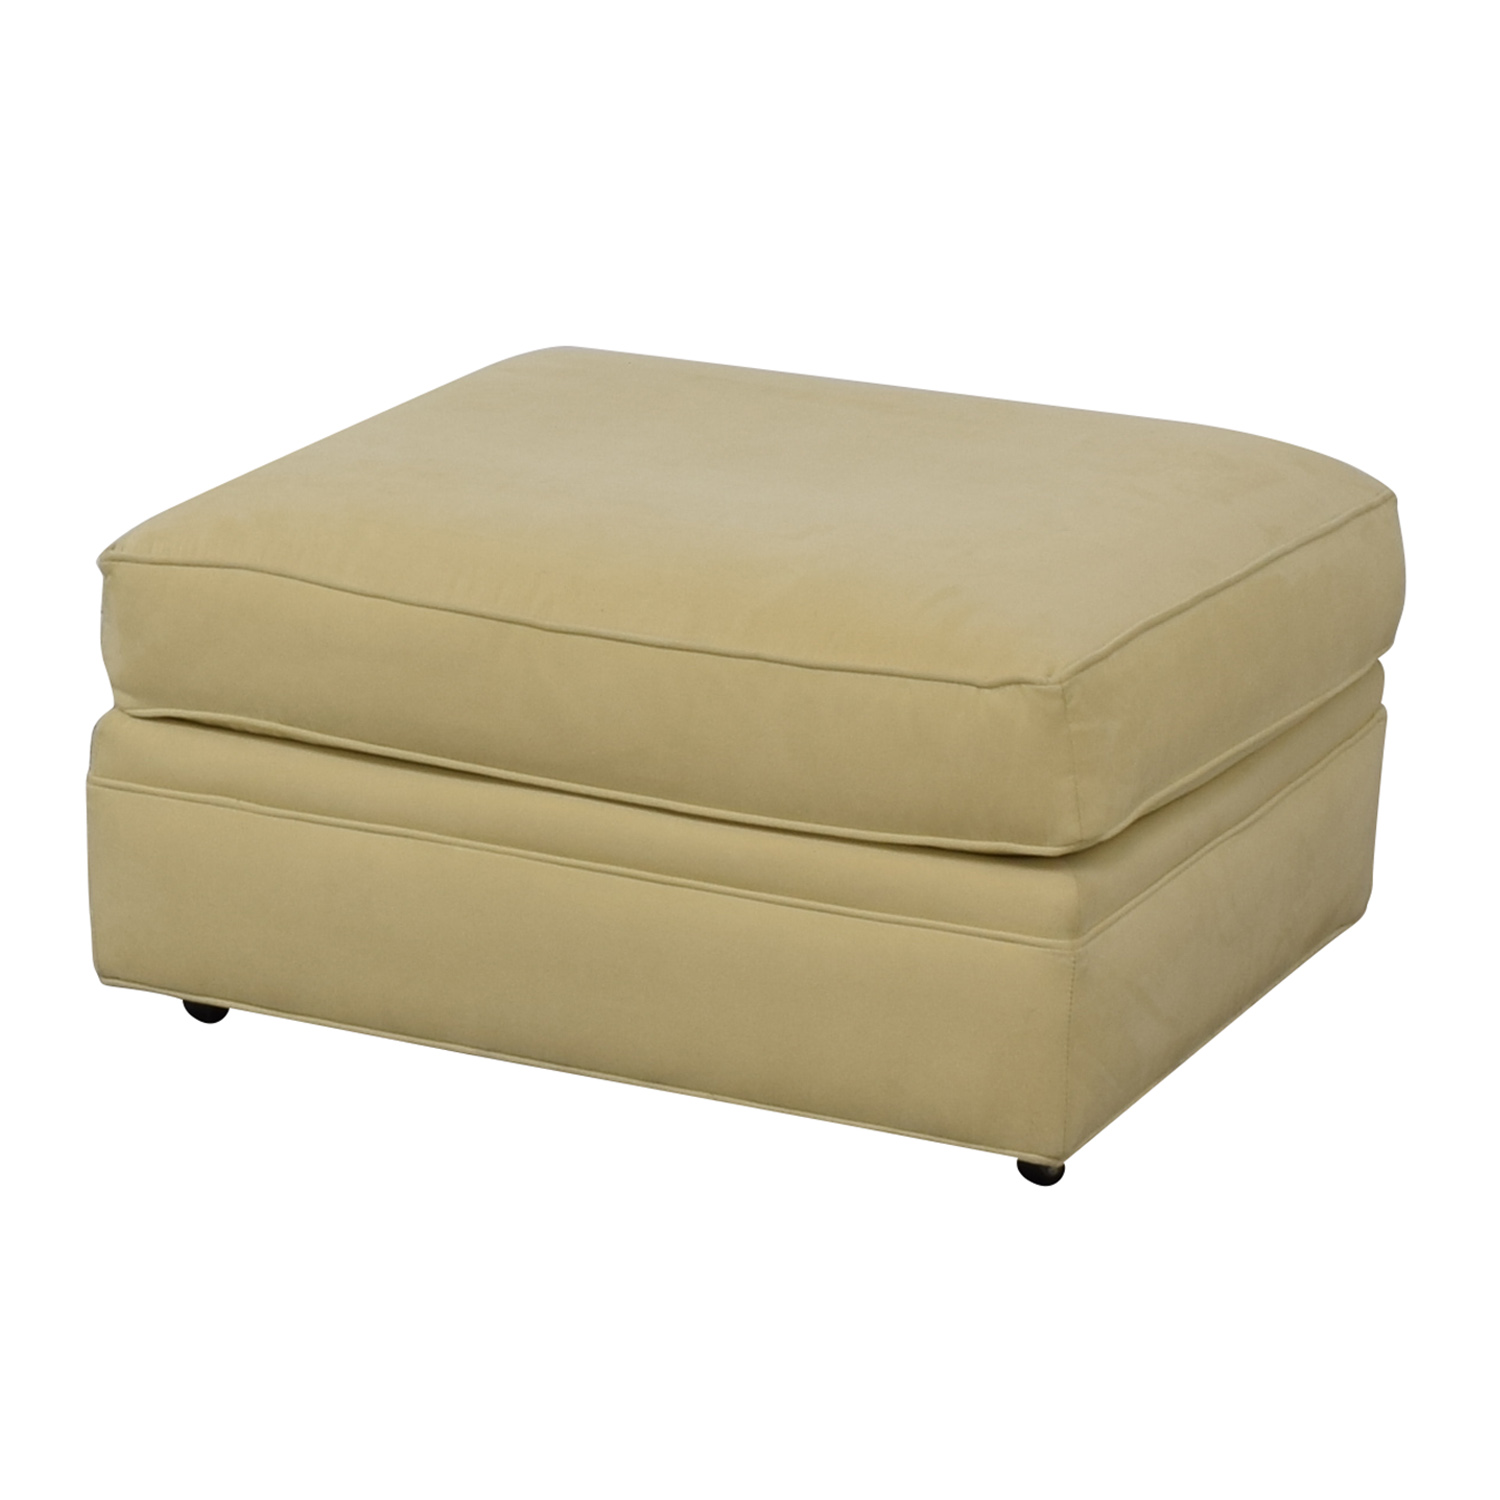 Crate & Barrel Crate & Barrel Beige Ottoman discount